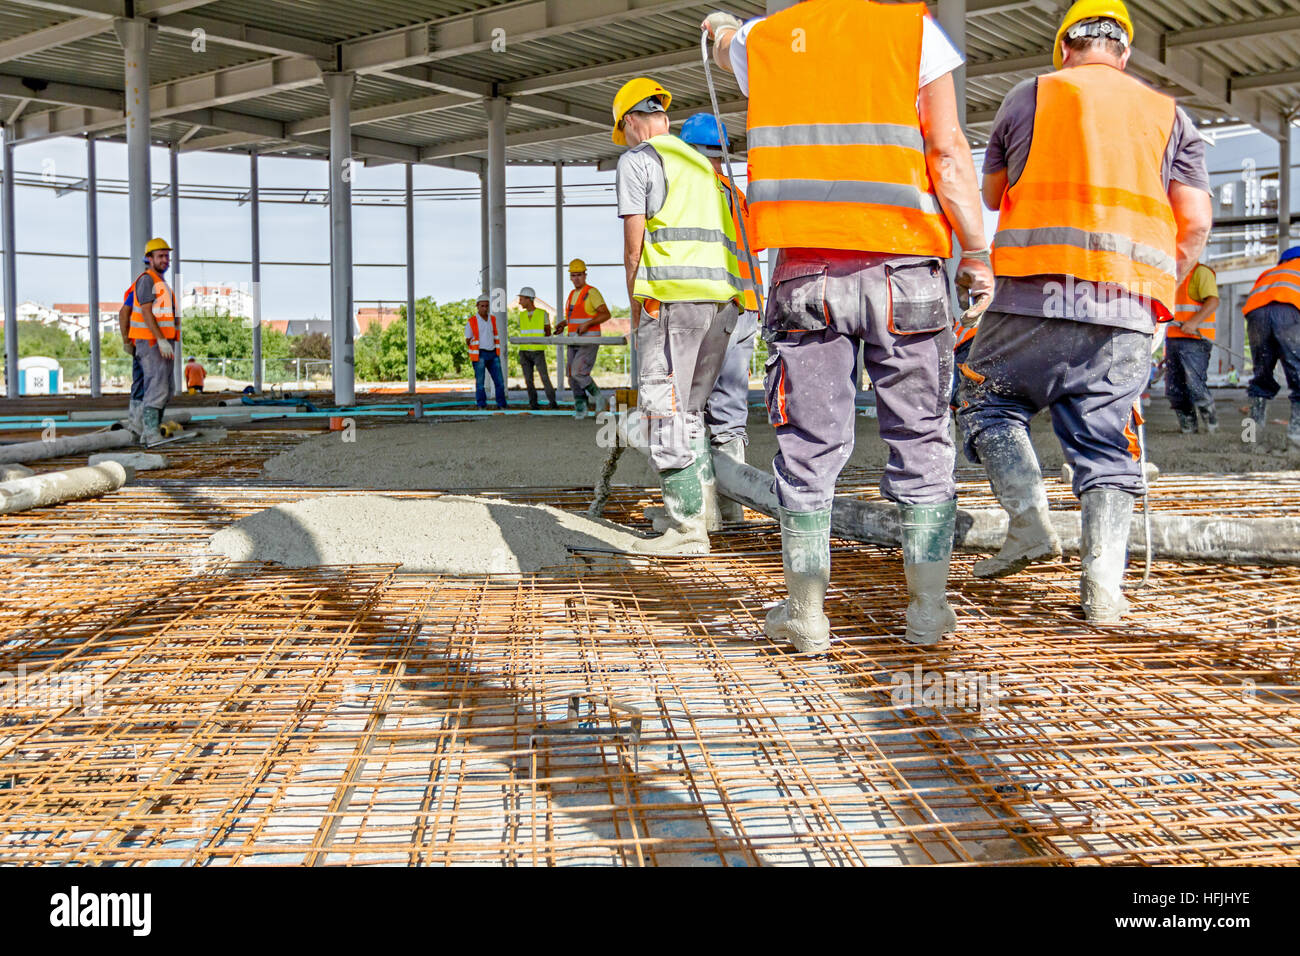 Zrenjanin, Vojvodina, Serbia - May 29, 2015: Construction workers are pouring concrete in building foundation, directing Stock Photo